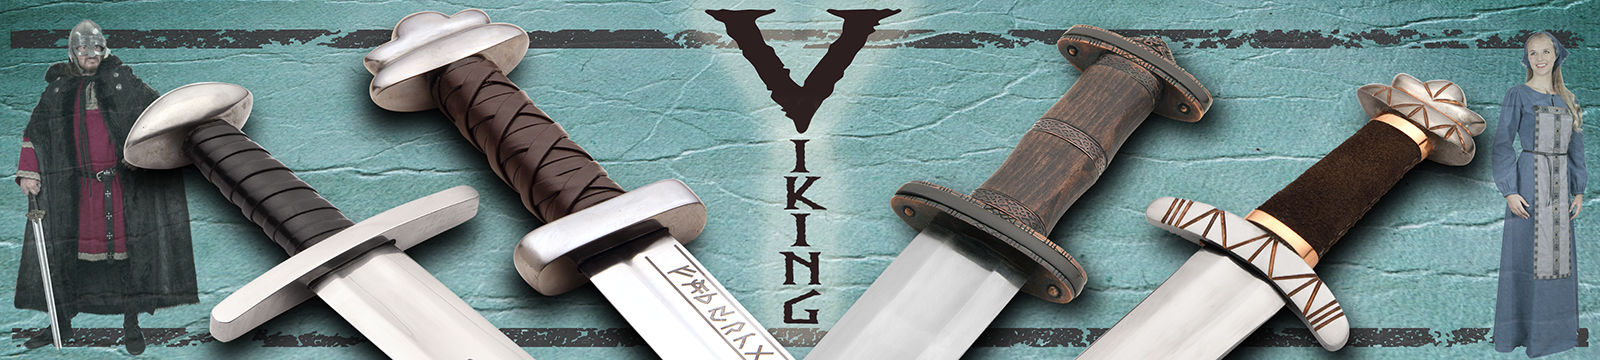 Viking Swords, Armor, and More